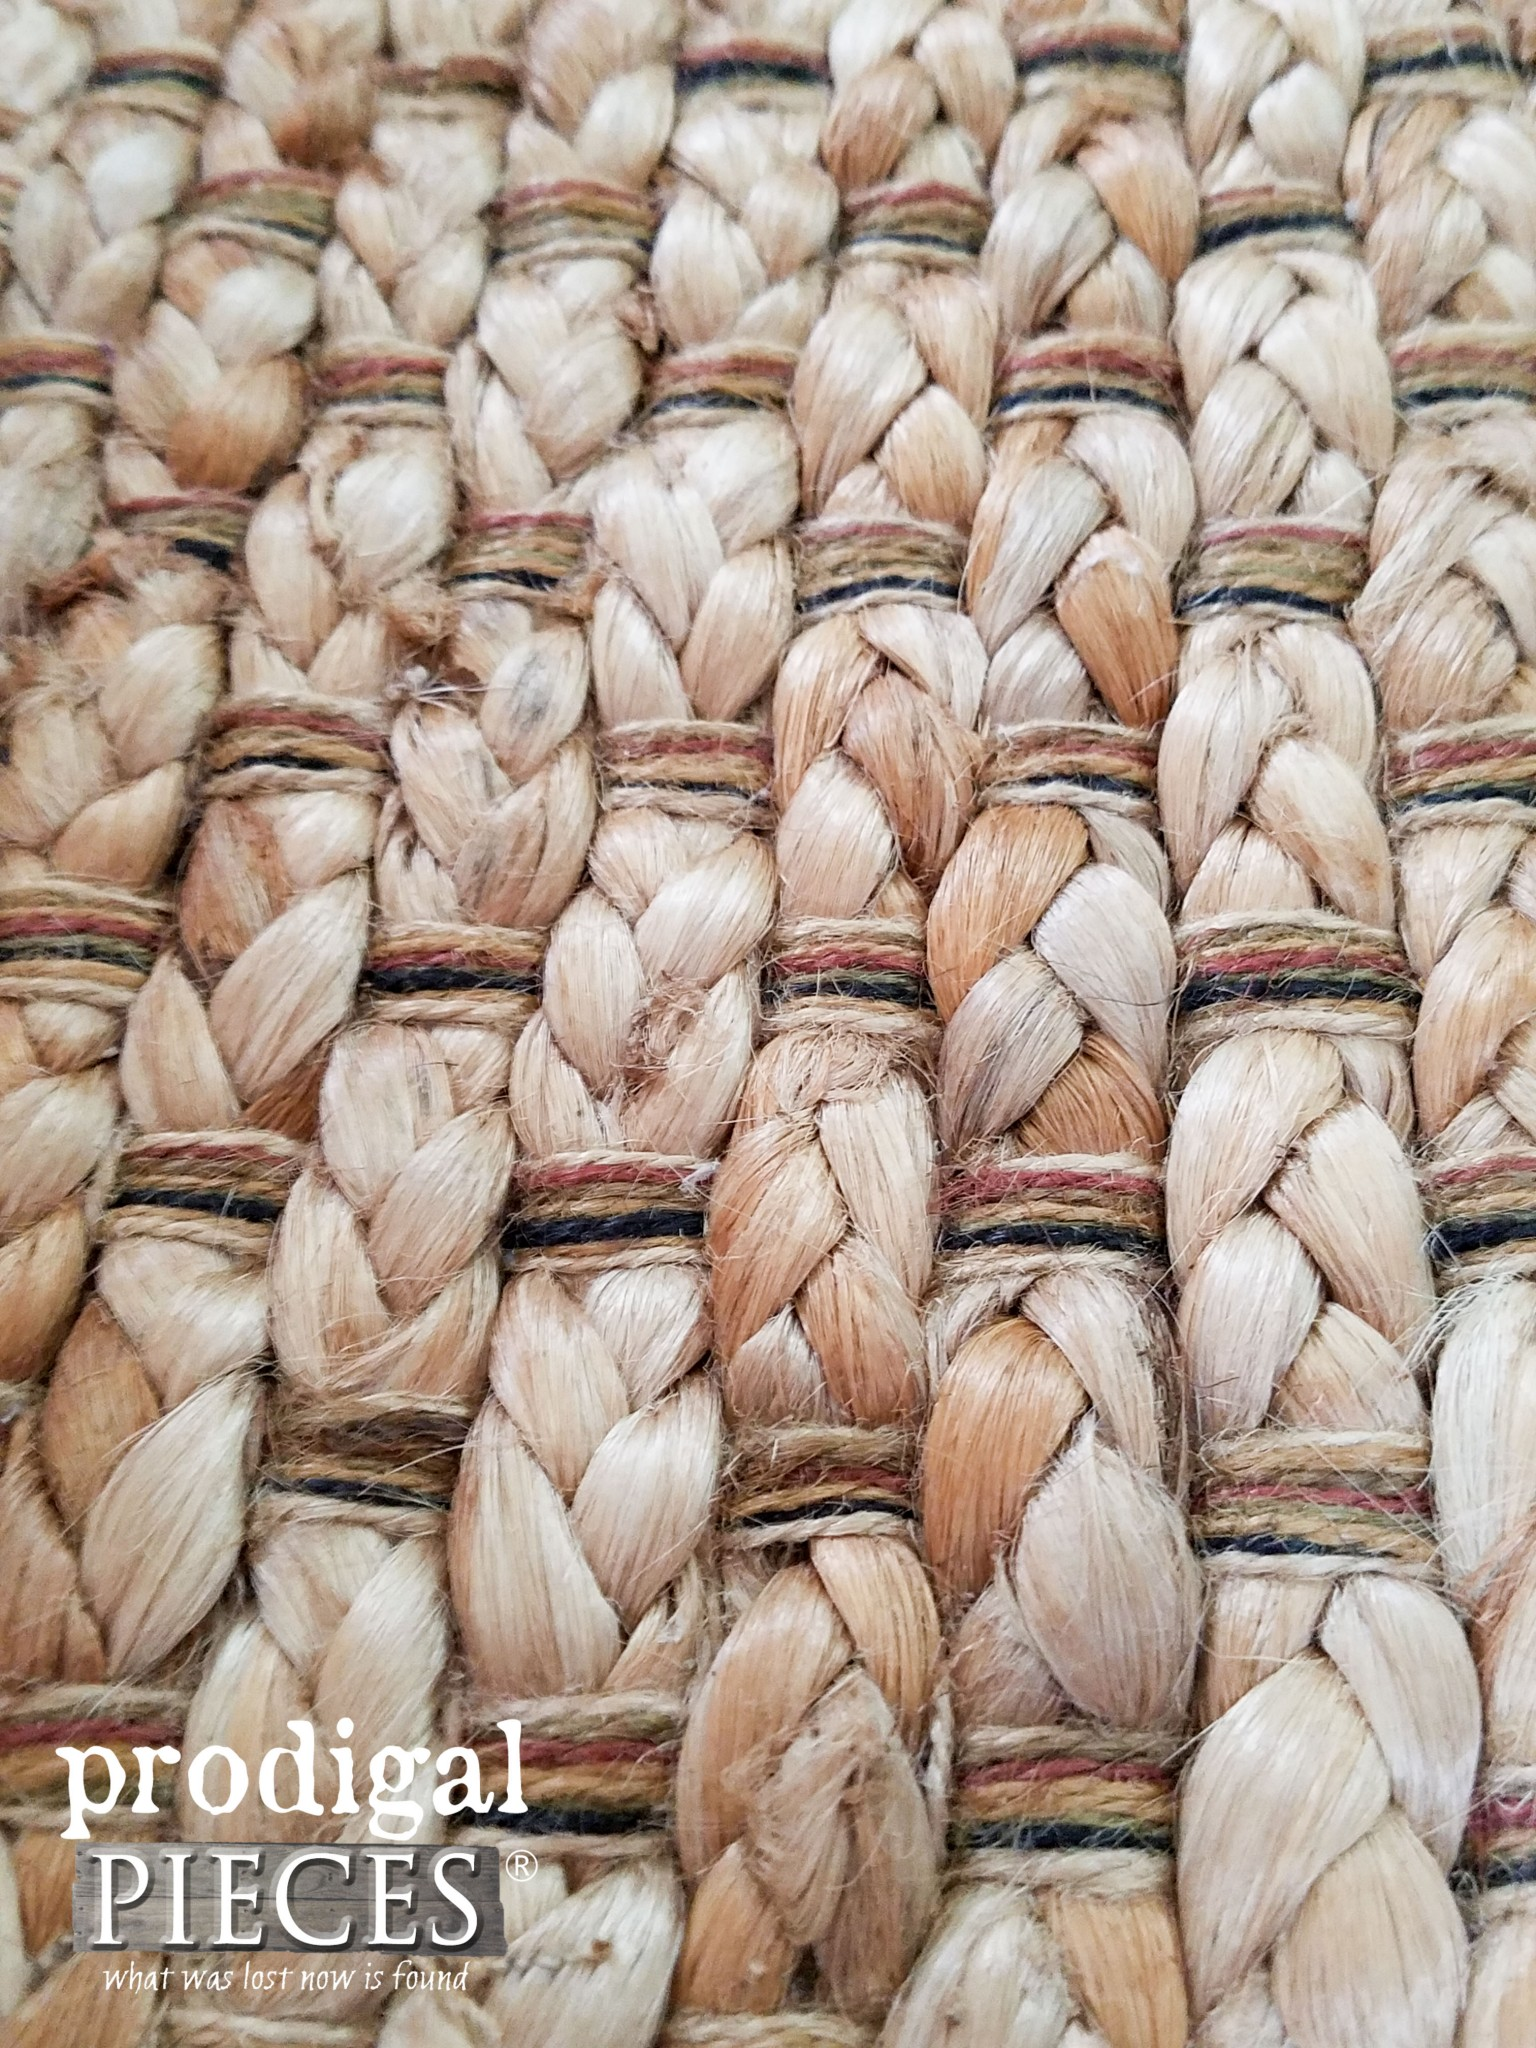 Braided Jute Area Rug for Your Home Decor | Prodigal Pieces | www.prodigalpieces.com